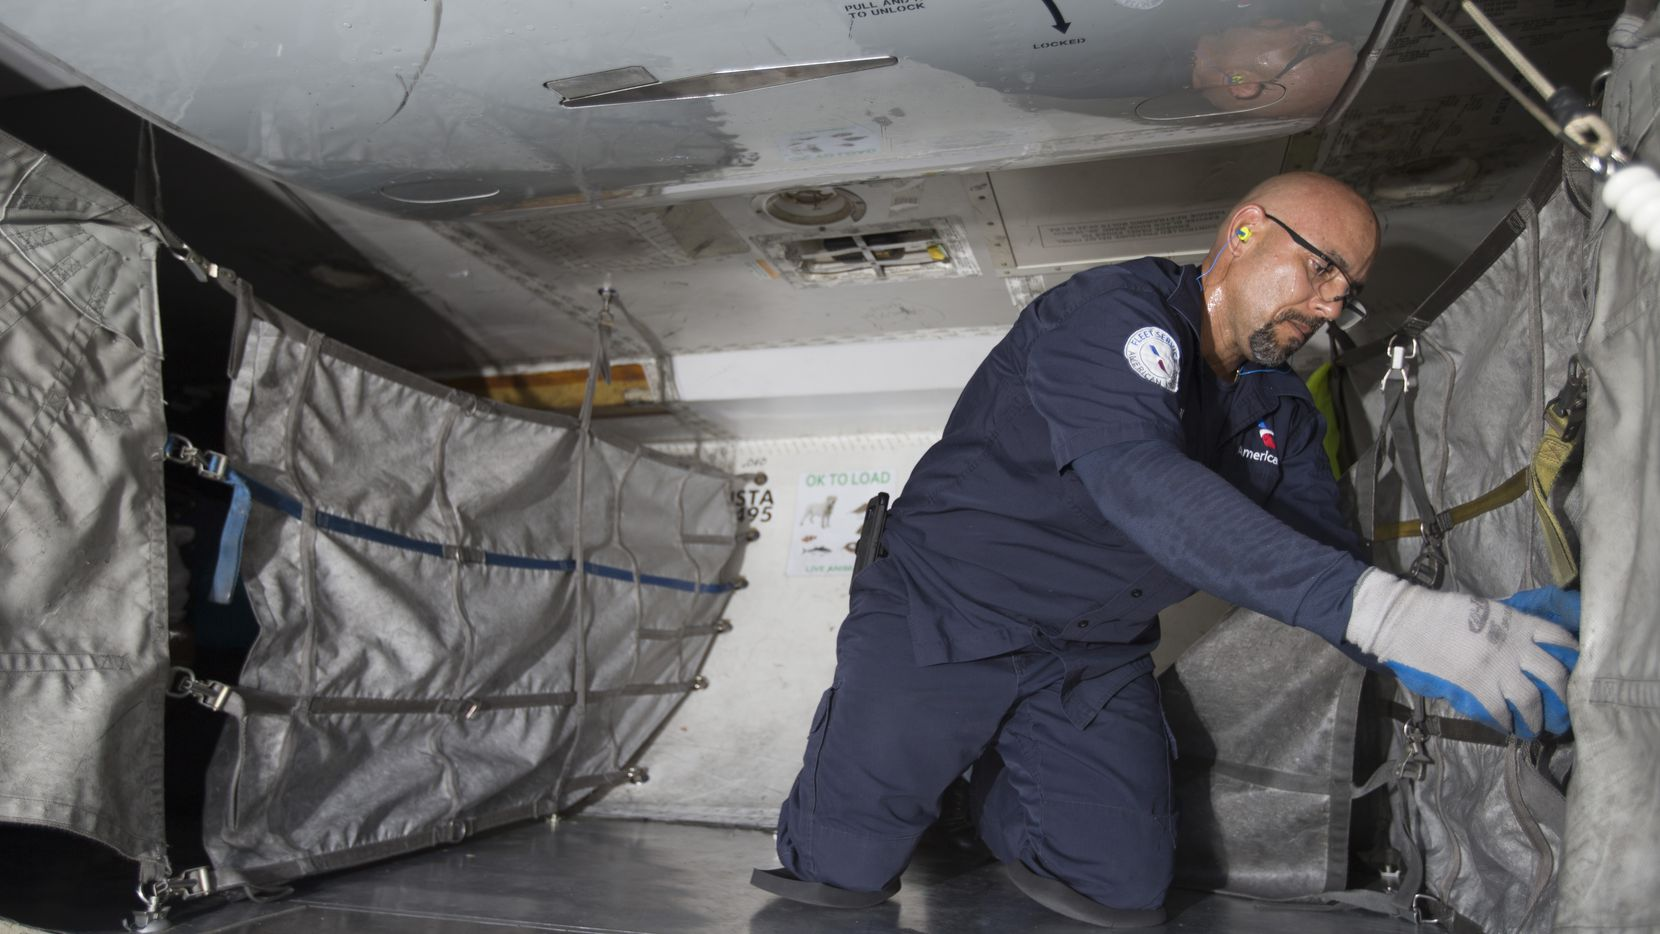 An American Airlines fleet worker loads cargo onto a plane.